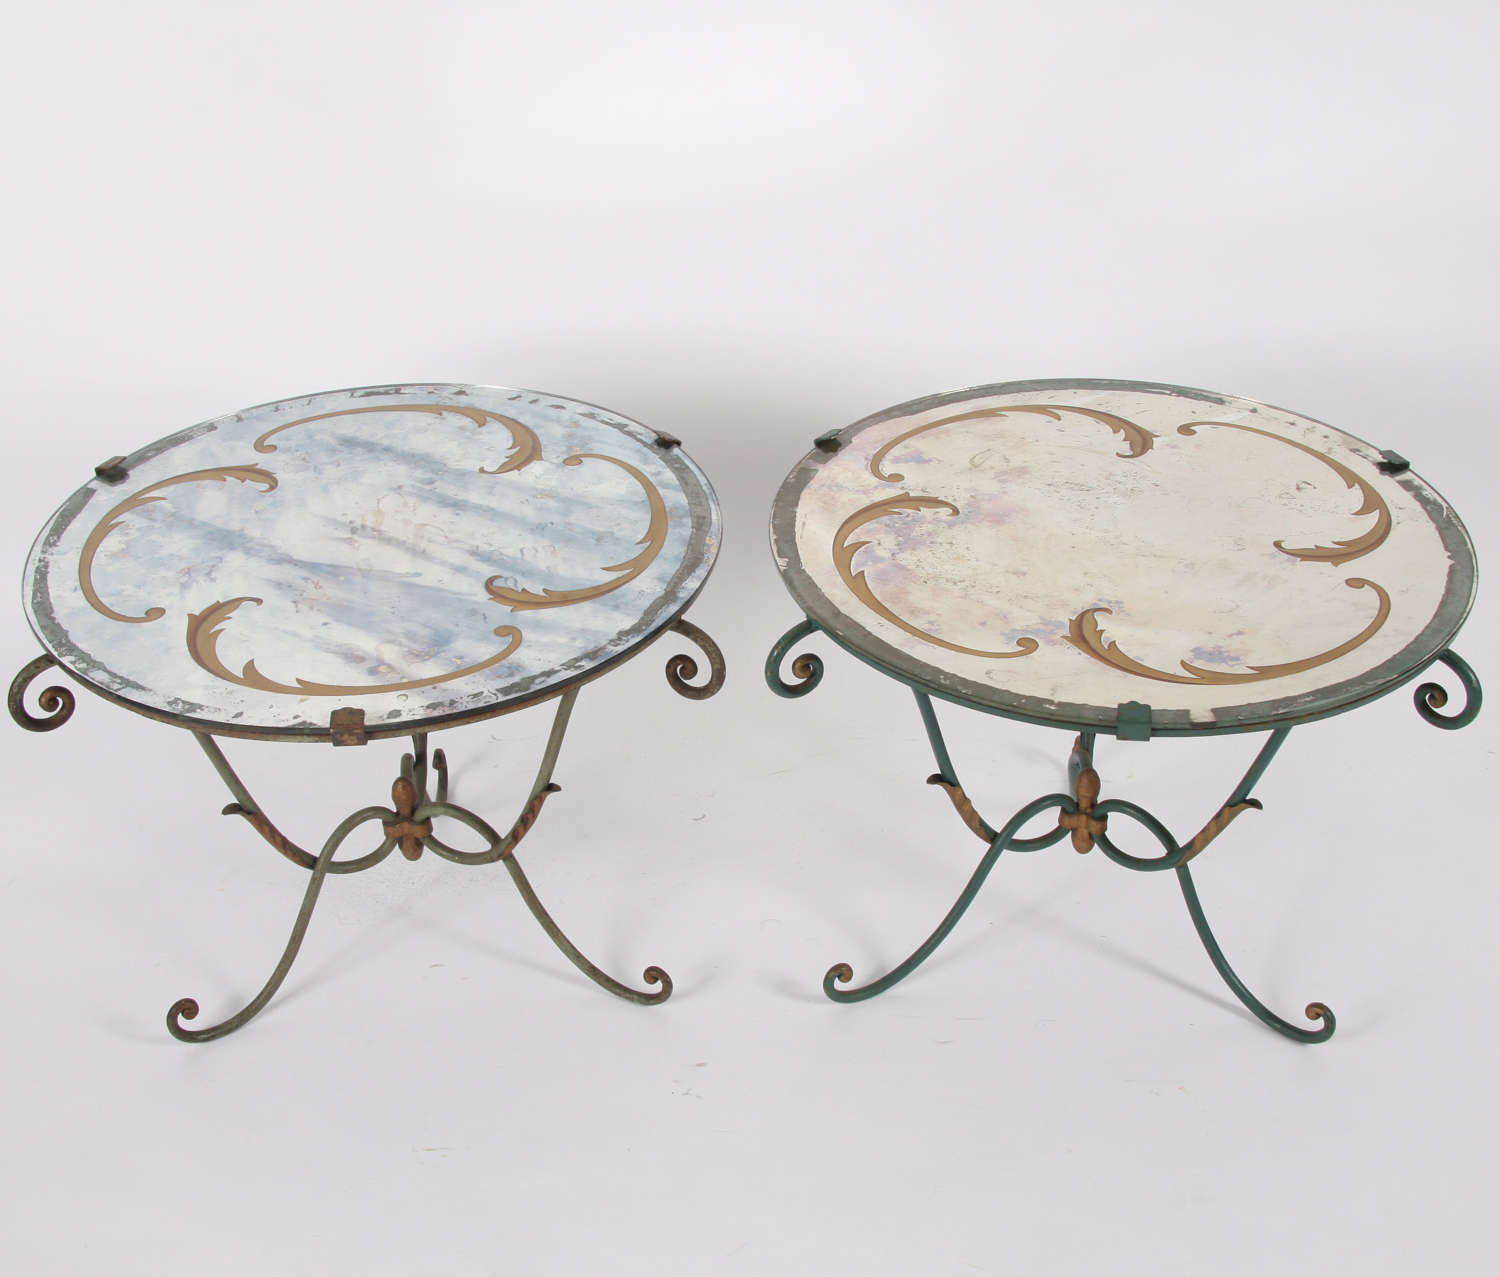 Italian Mid-Century Verre Églomisé and Wrought Iron Side Tables